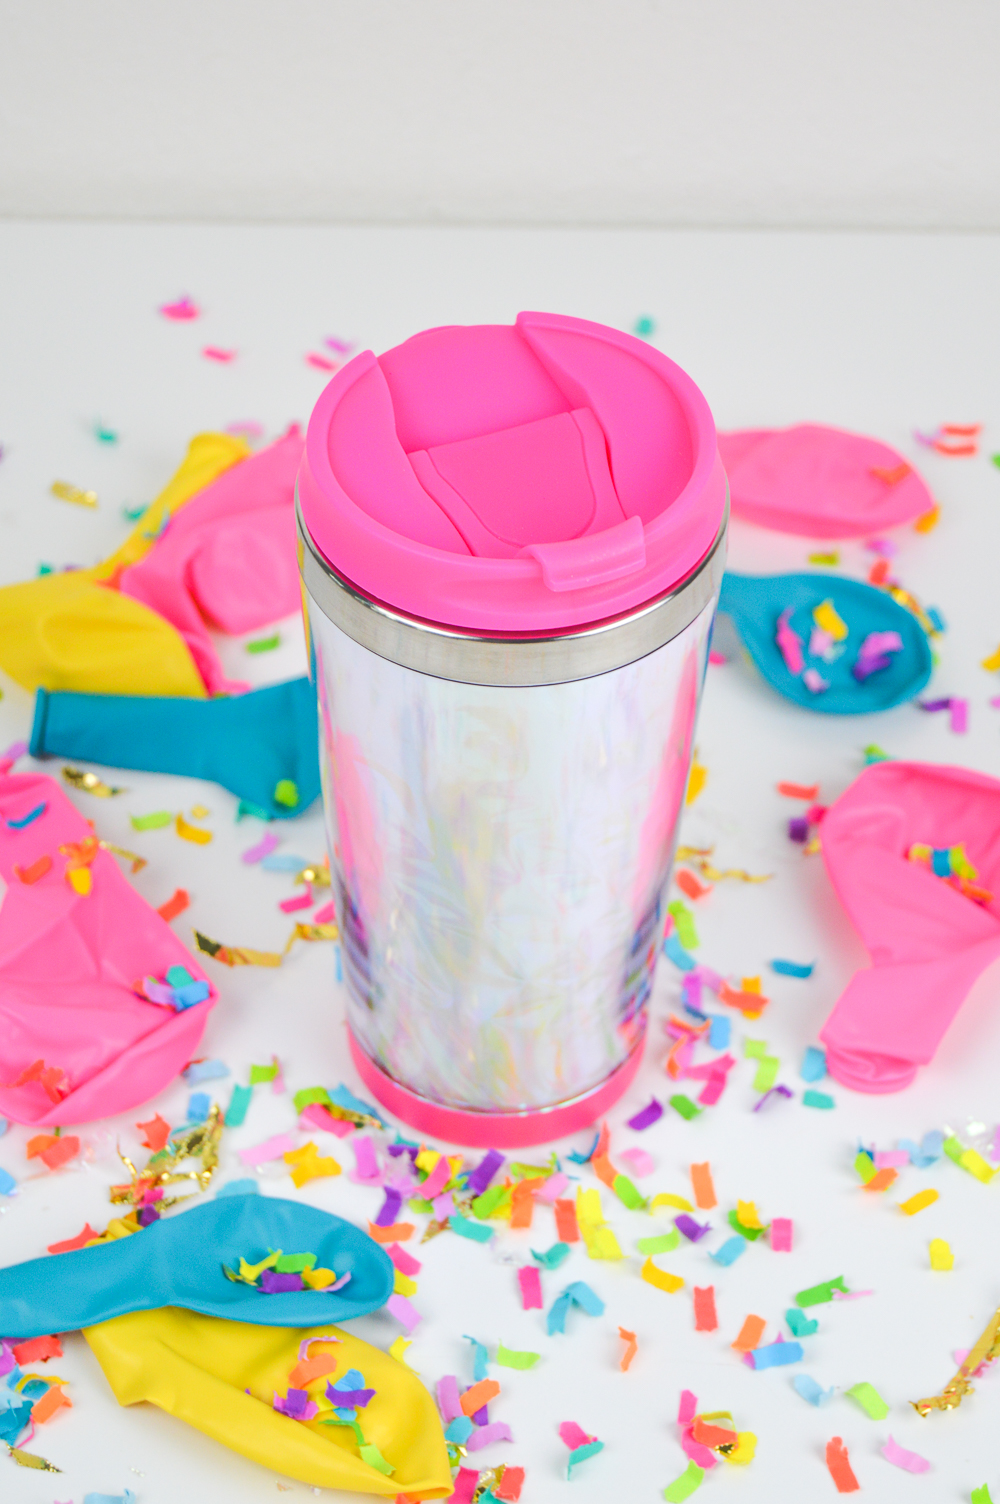 DIY Holographic Travel Mug | Club Crafted